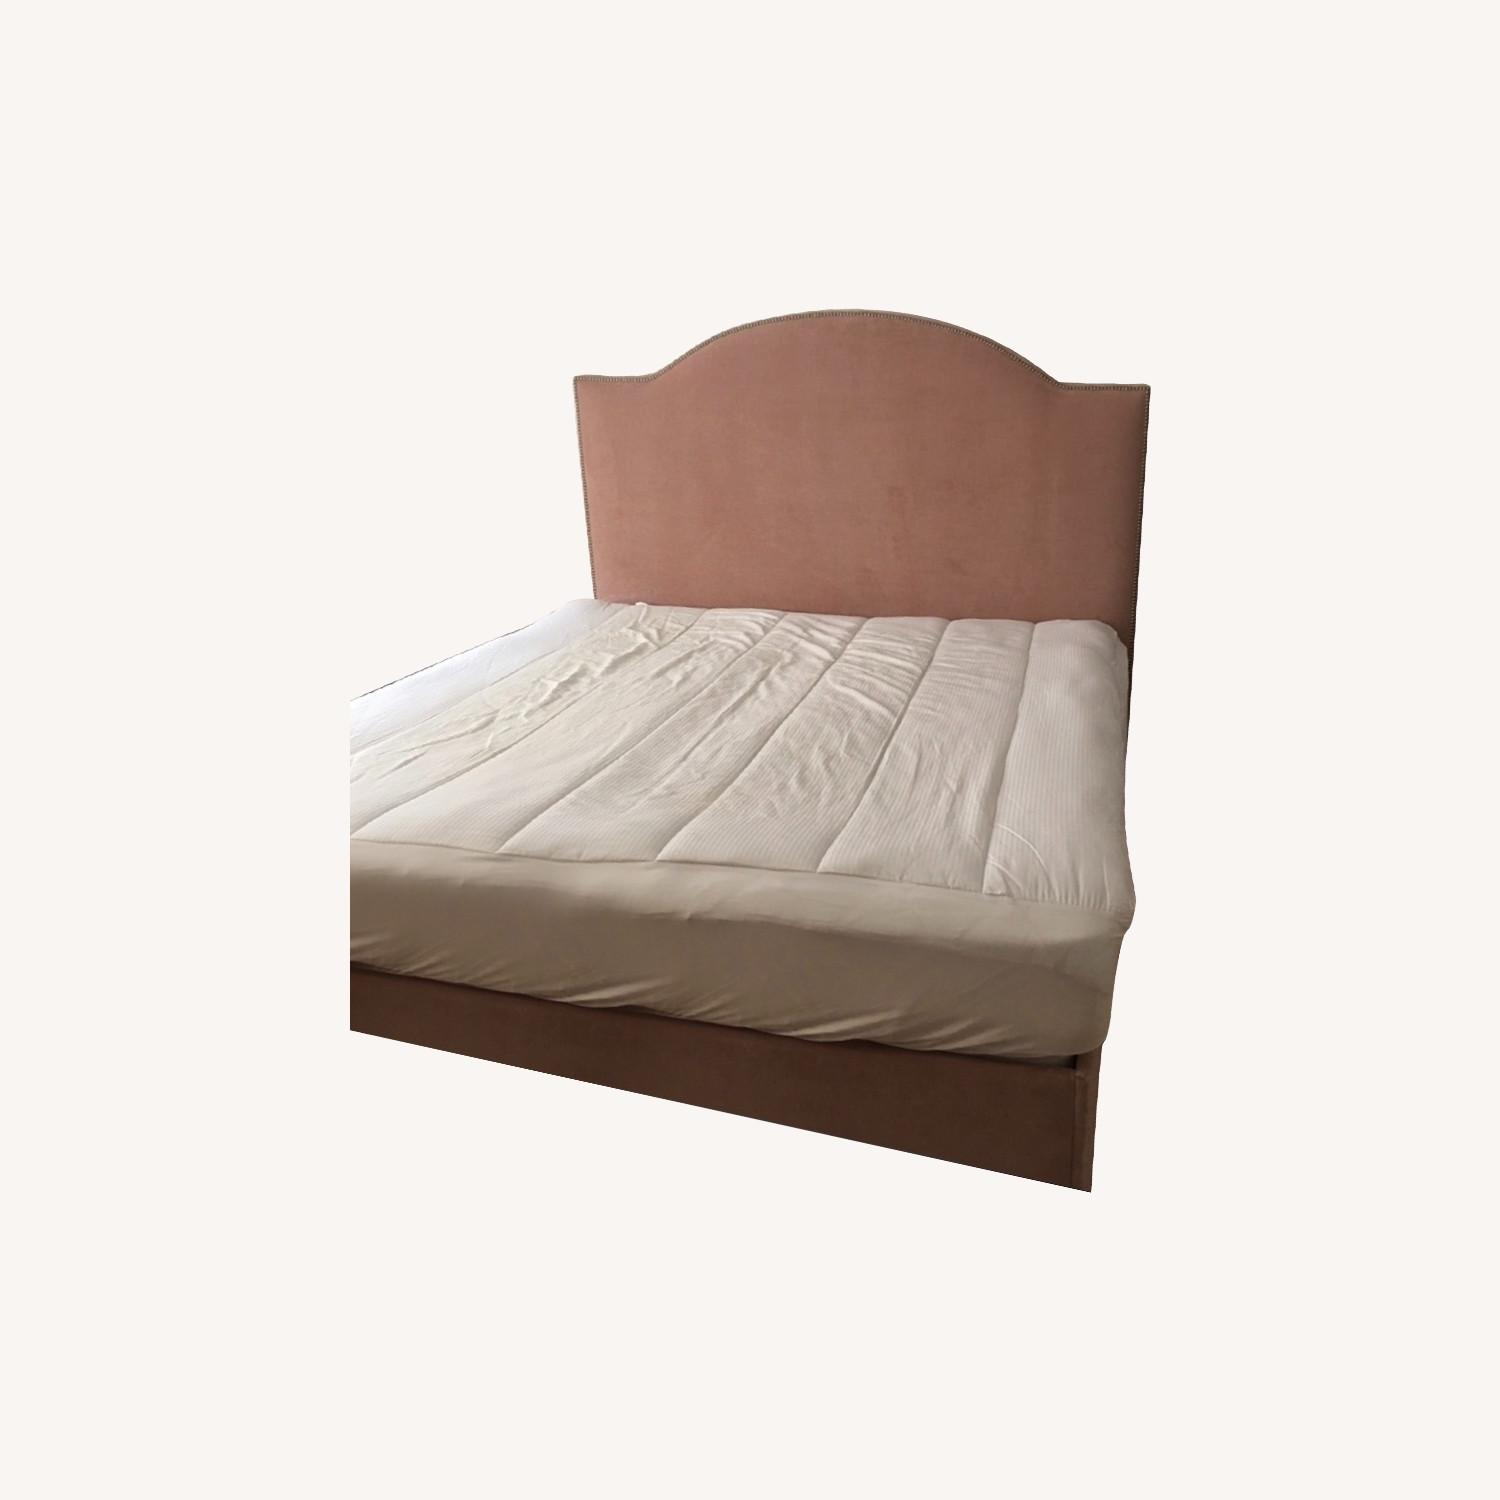 Taylor Made King Size Bed - image-0